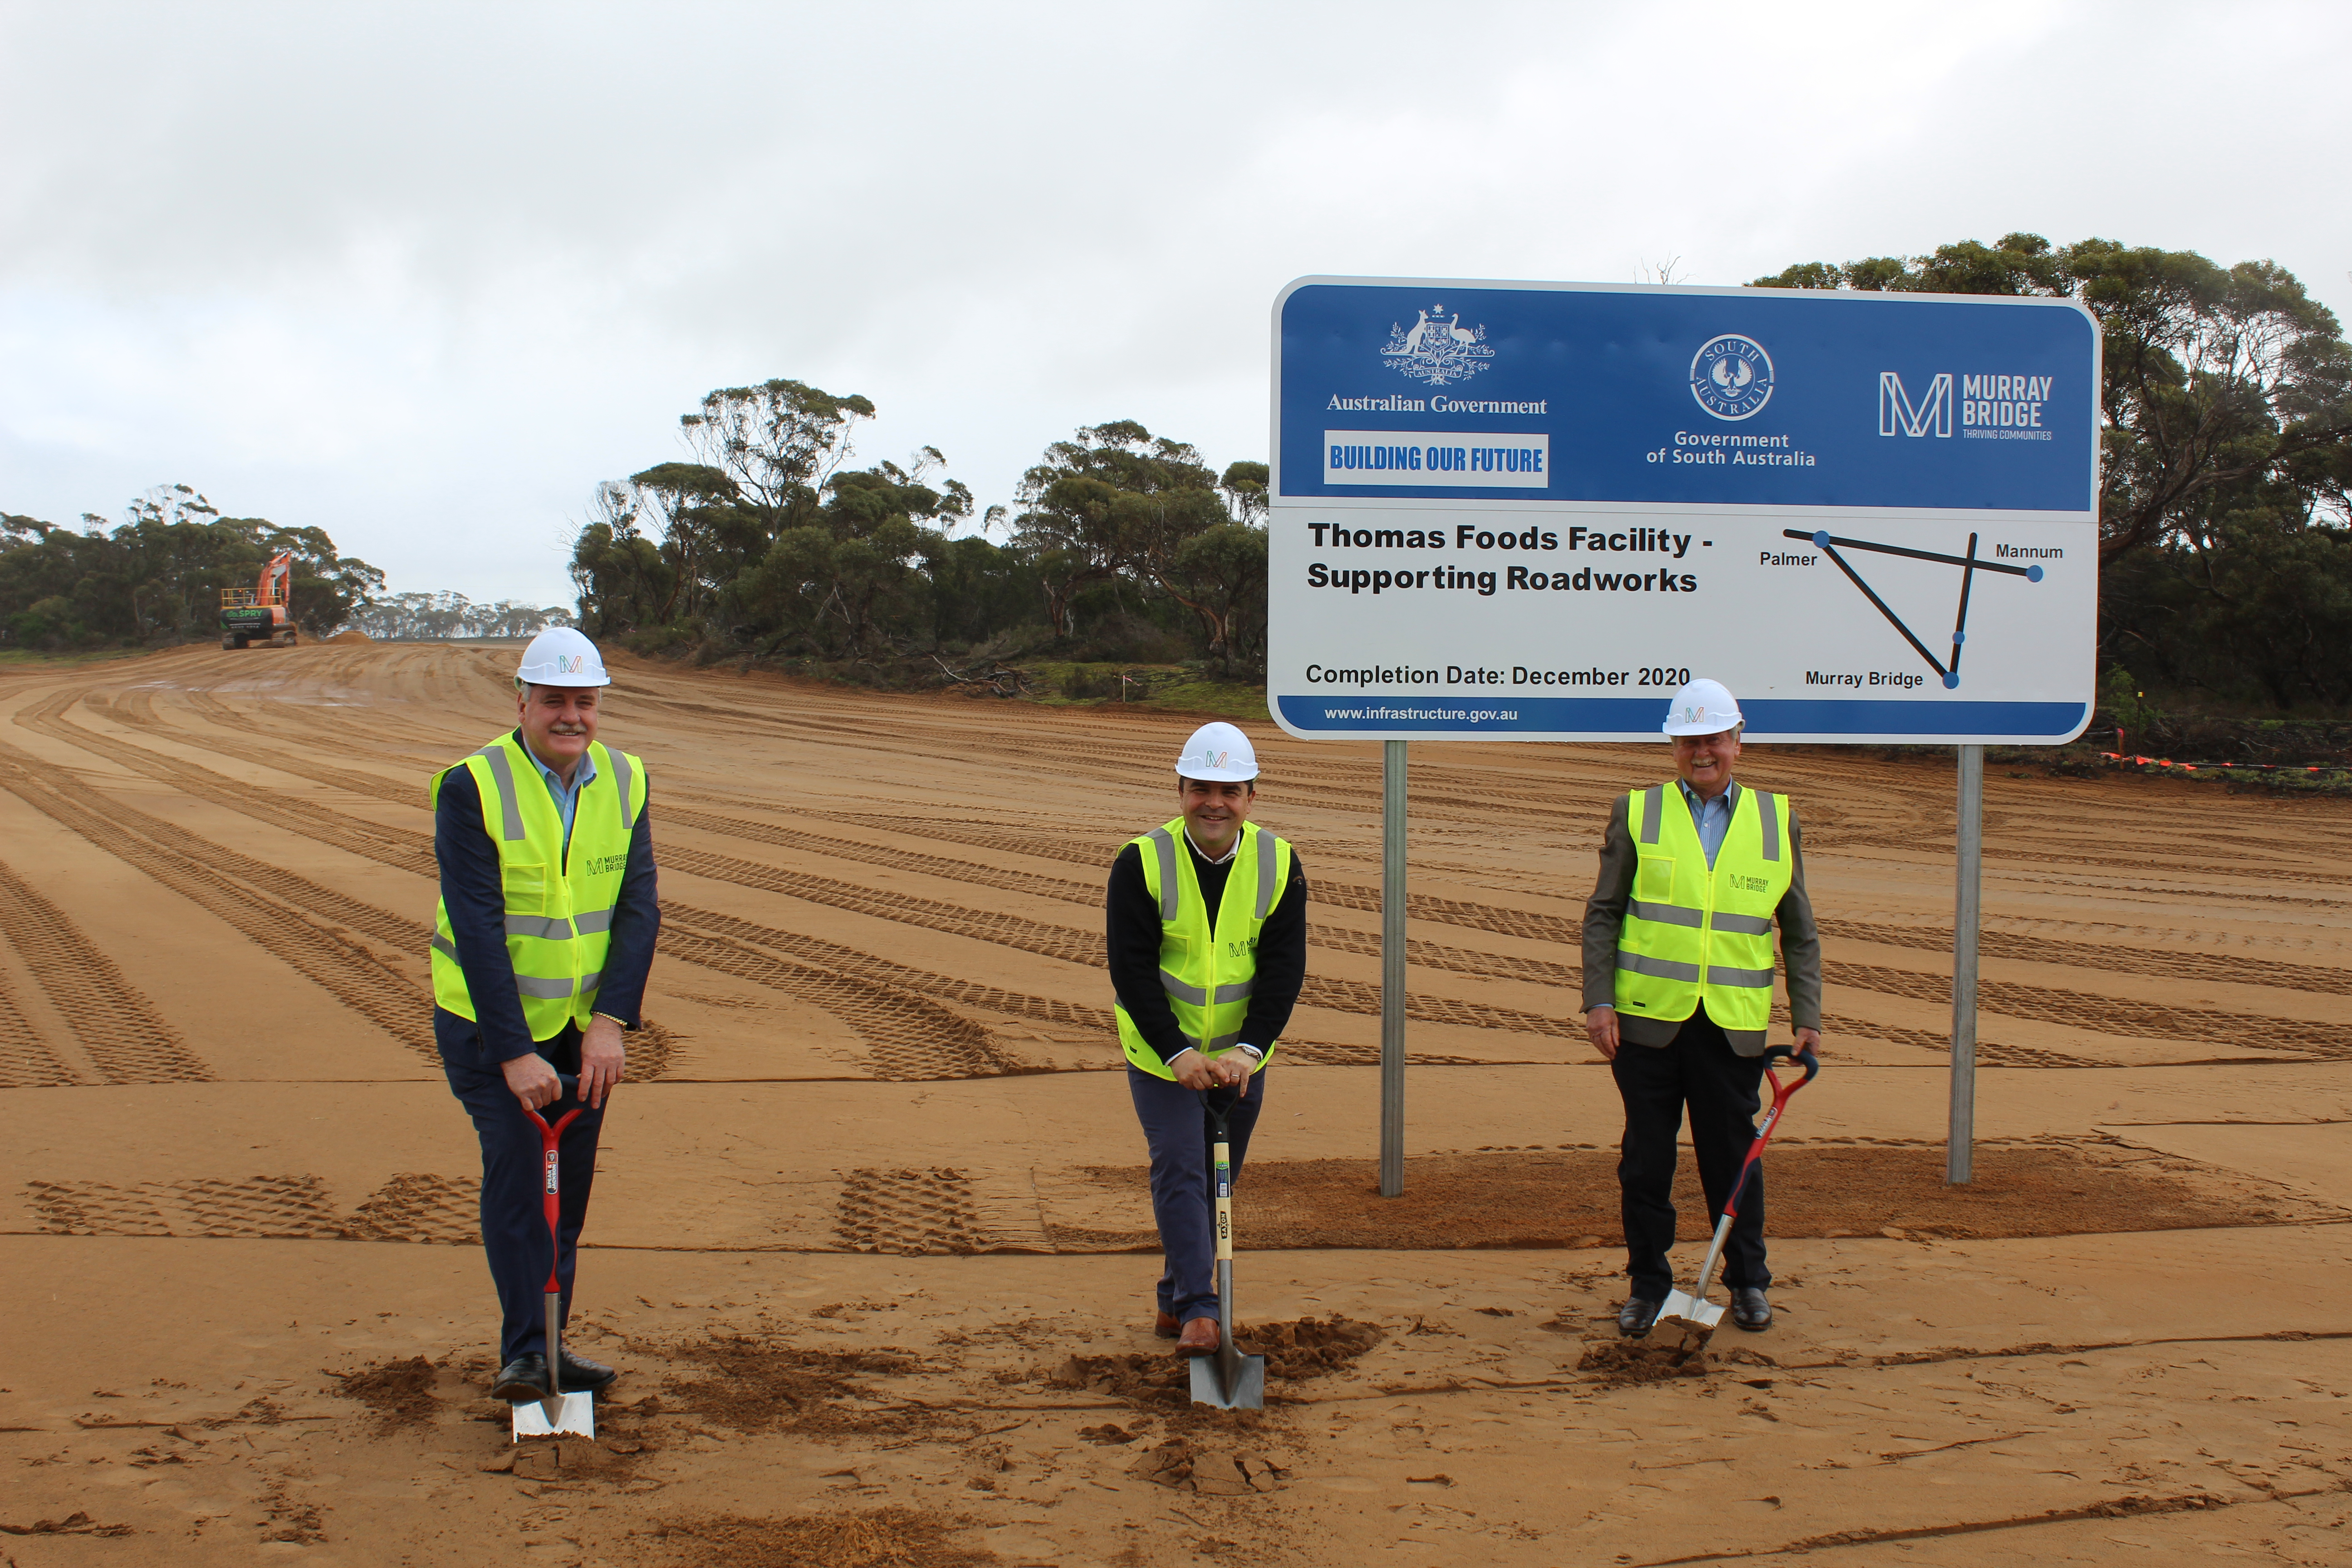 FIRST SOD-TURNED ON ROAD UPGRADES SUPPORTING NEW THOMAS FOODS INTERNATIONAL FACILITY